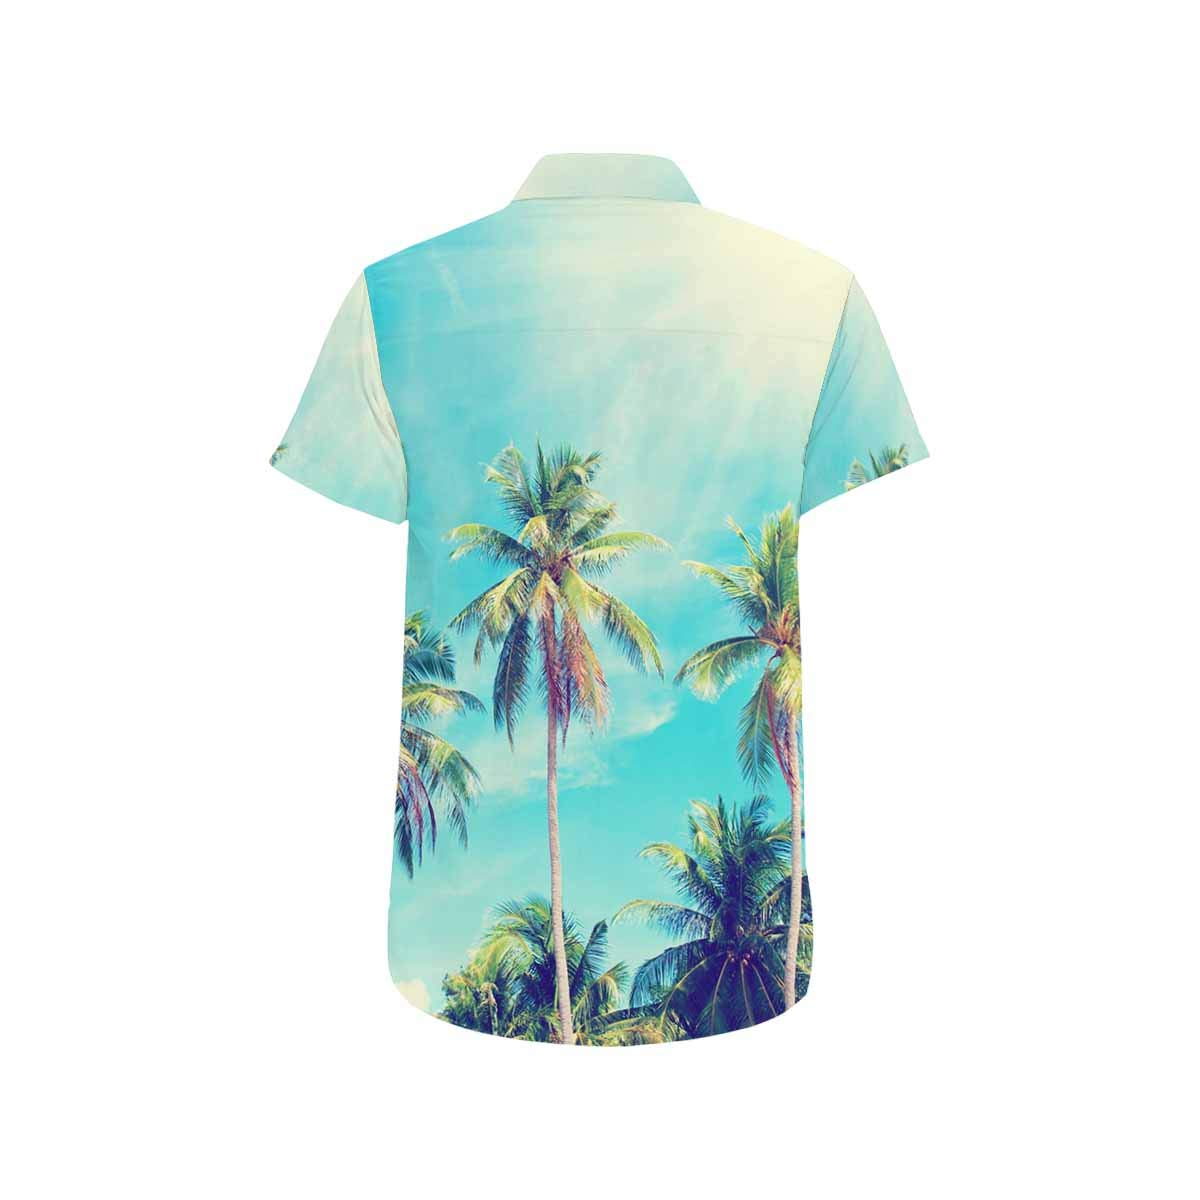 InterestPrint Palm Trees Perspective View Summer Casual Short Sleeve T-Shirt Stand Collar Shirts for Men